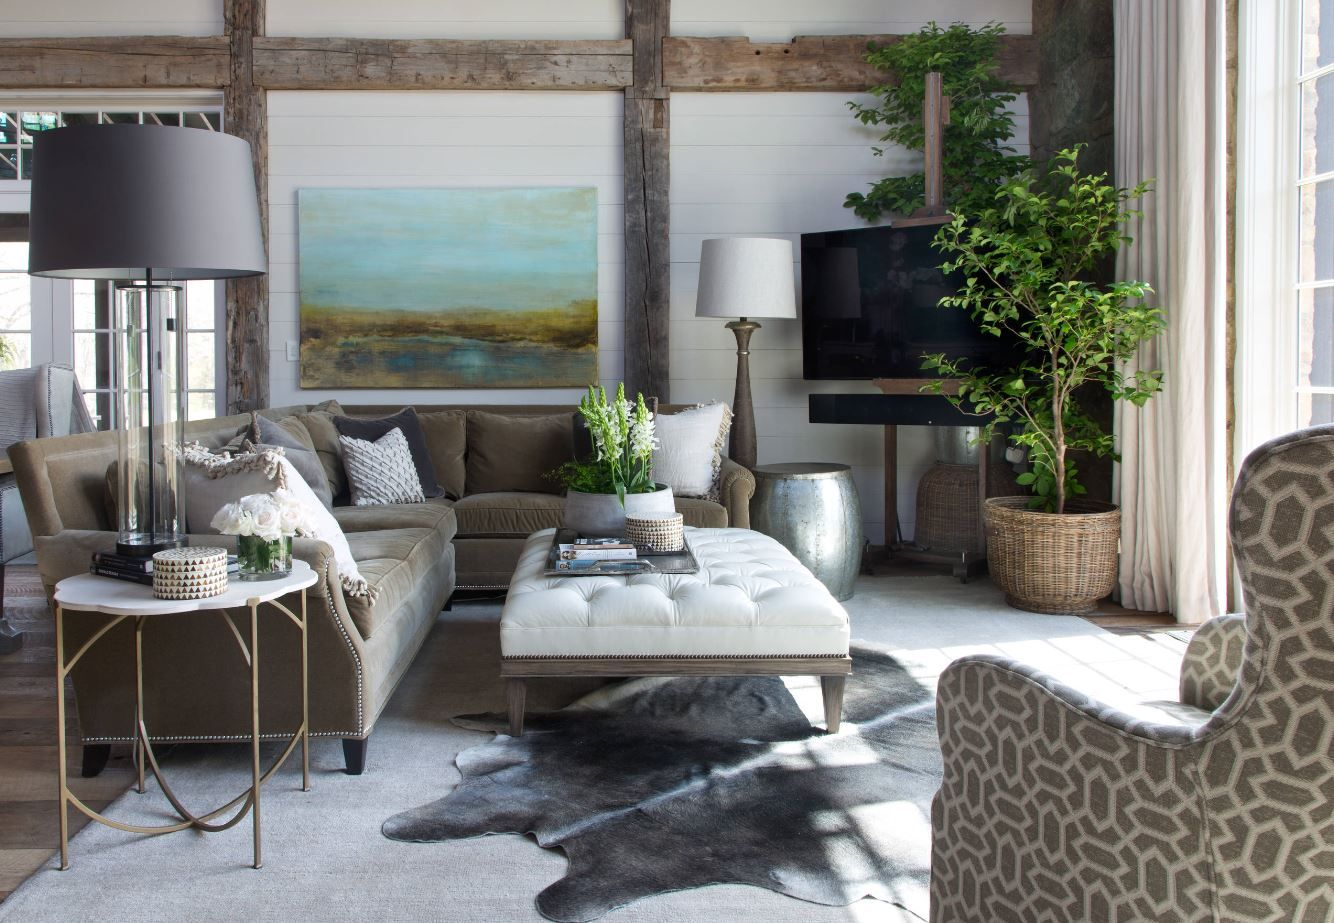 Modern Rustic Interior Design 7 Best Tips To Create Your Flawless Space Decorilla Online Interior Design Interior Design Rustic Rustic Home Design Family Room Design